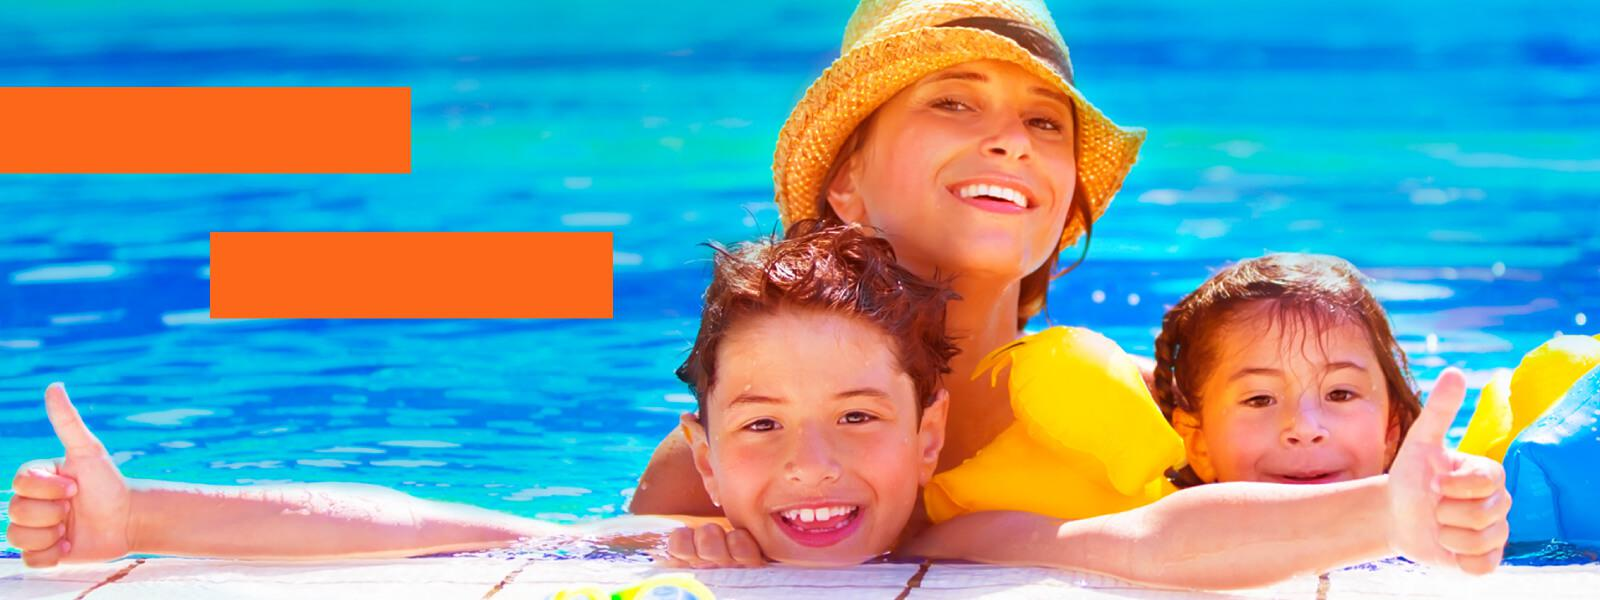 In FAMILY you enjoy more! - GHL Relax Hotel Club El Puente - Girardot